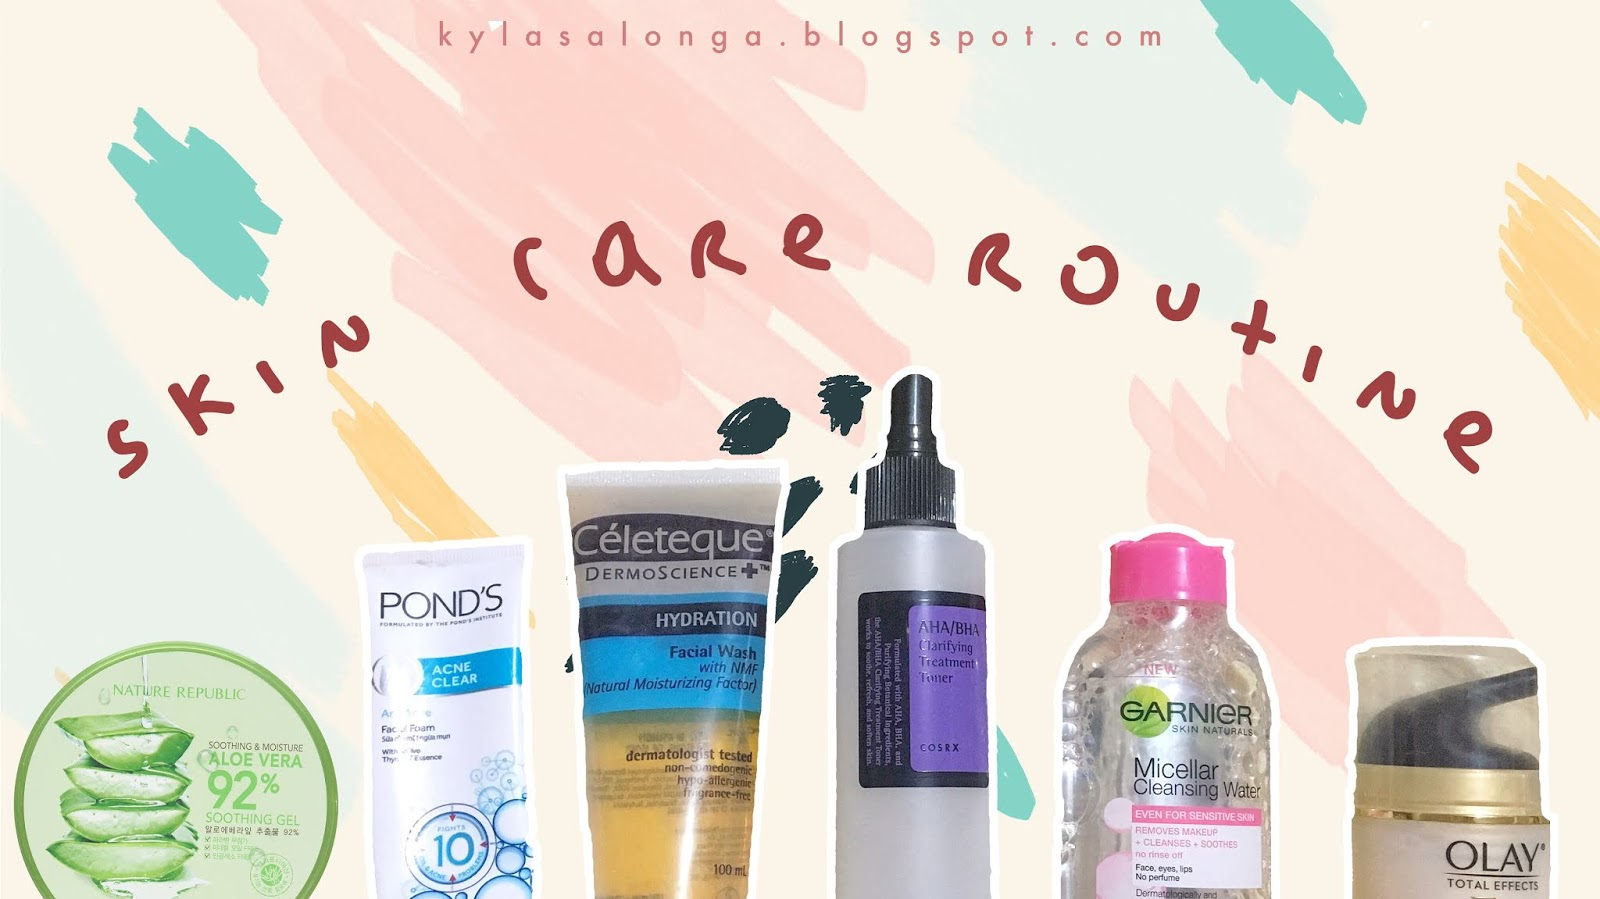 skin care routine,skin care,skincare routine,skin,routine,care,how to get clear skin,dry skin,clear skin,skin routine,skin care routine shani grimmond,shani grimmond skin care routine,night routine,skincare,korean skin care,affordable skin care,skin care tips,how to take care of skin,nighttime skin routine,oily skin,beauty,makeup,acne,skin care routine 2018,drugstore skin care routine,my skin care routine